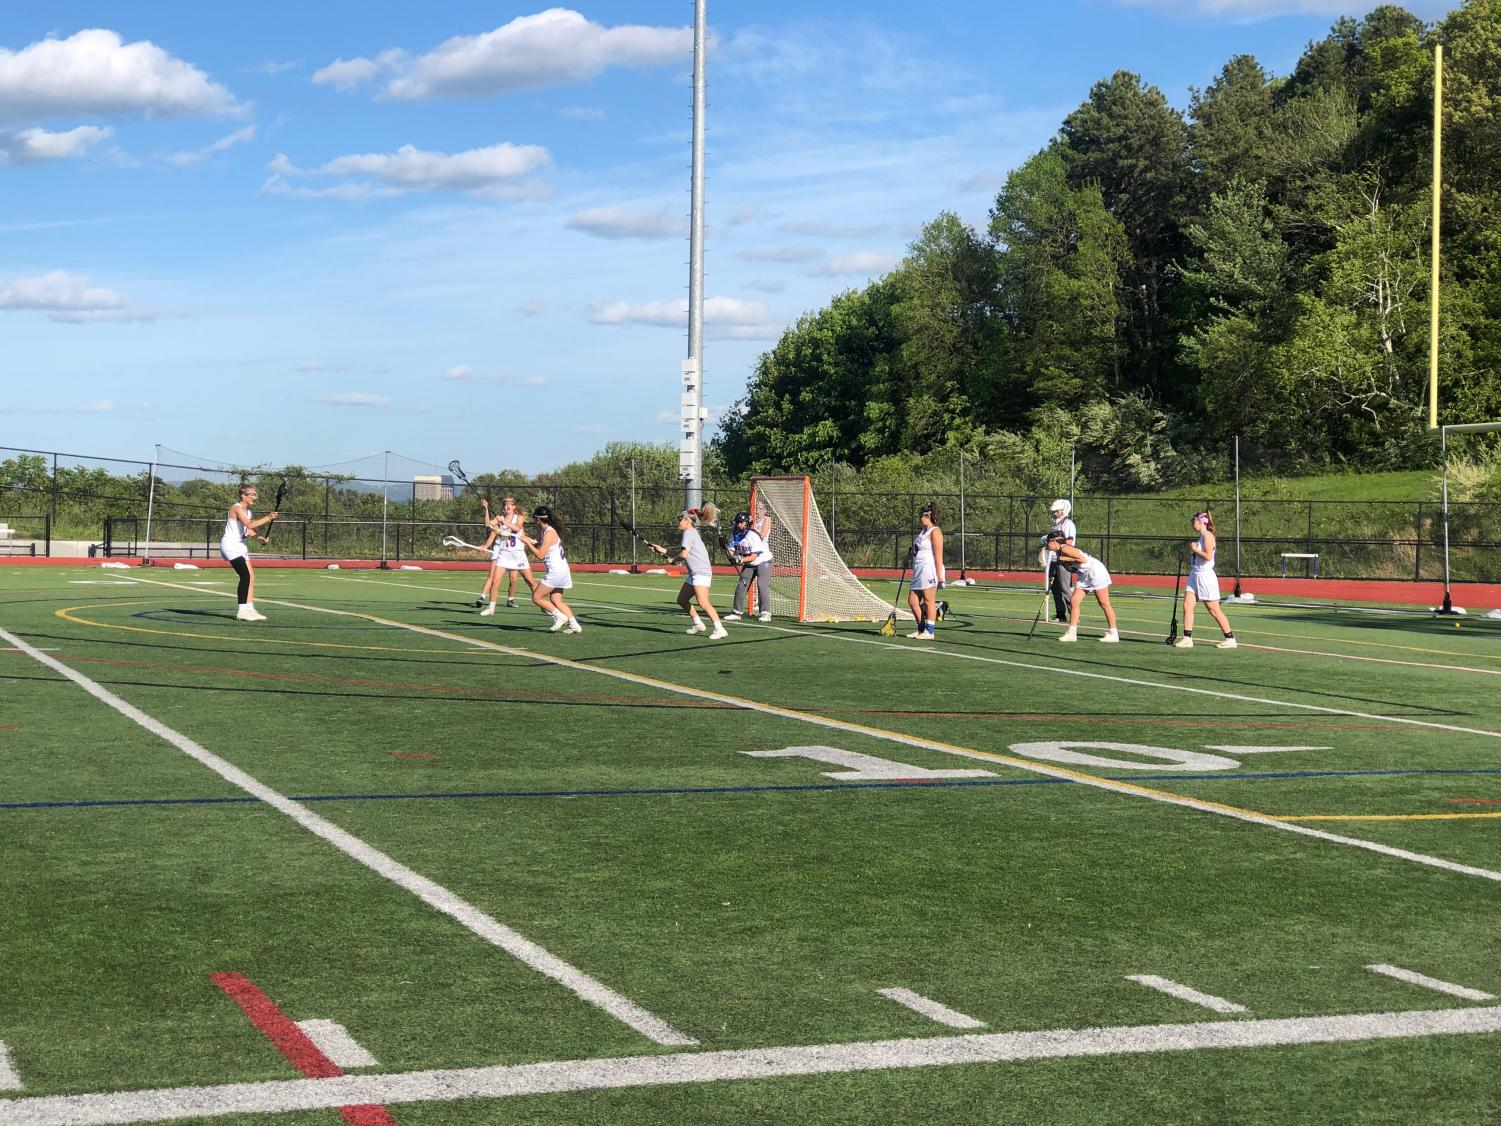 The lacrosse team warms up before their last league game.